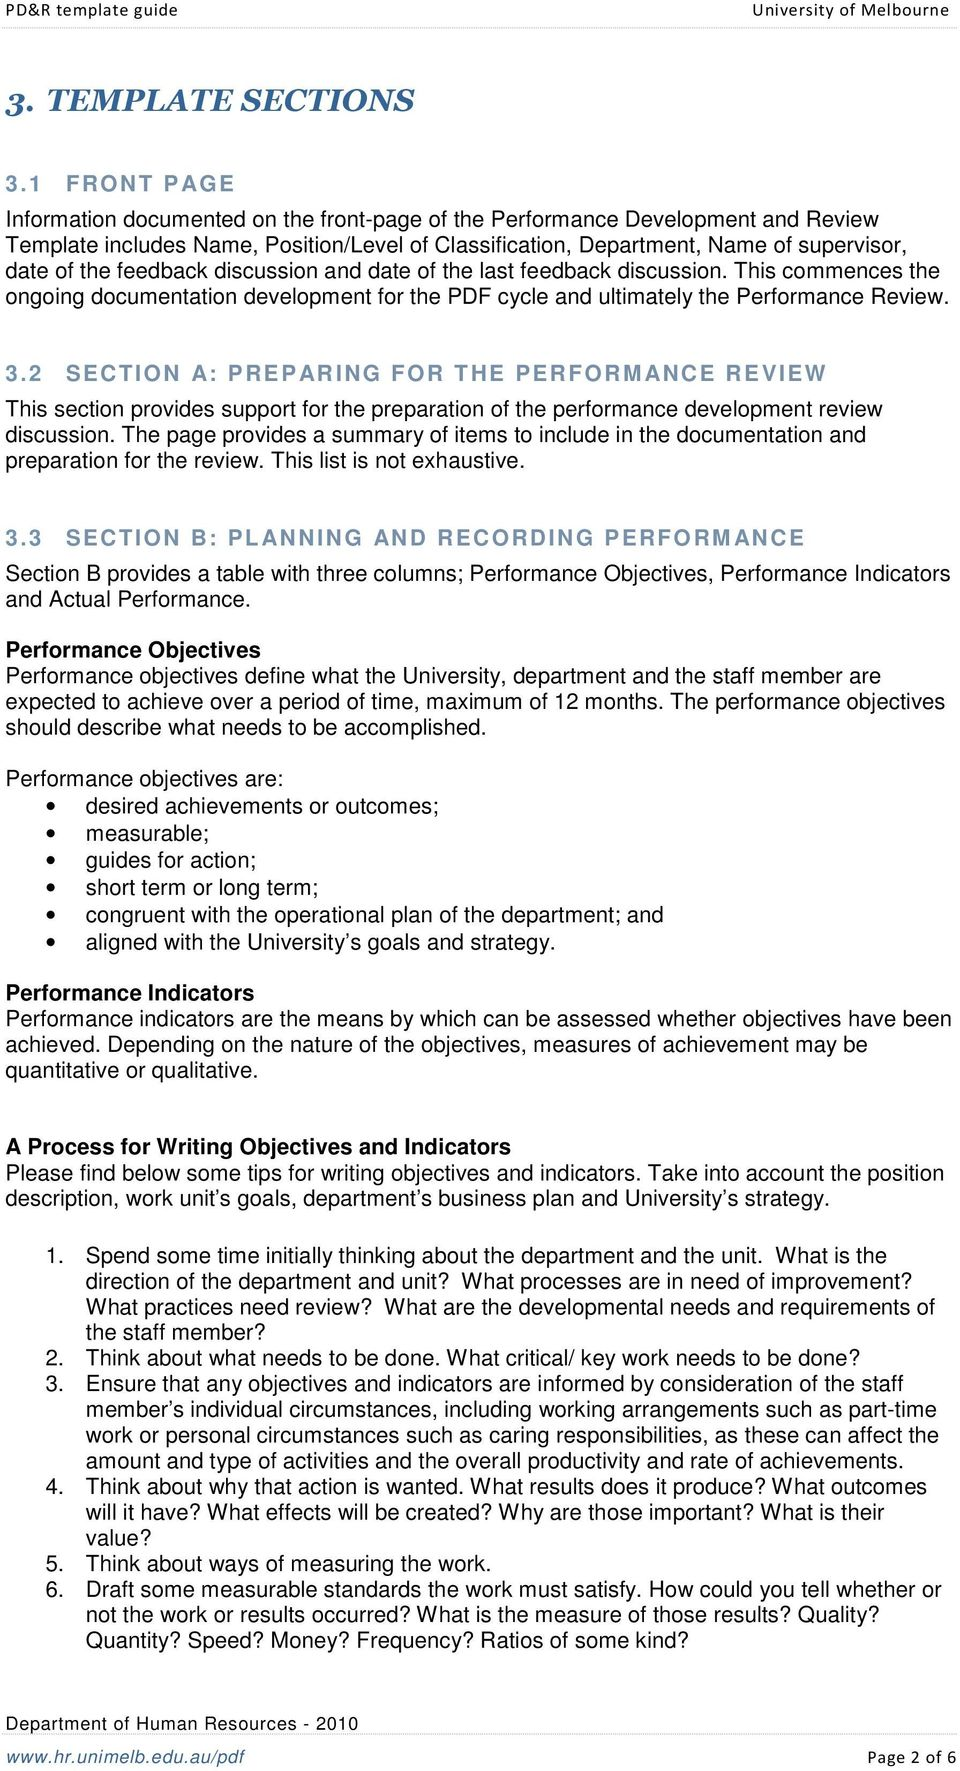 Performance Development And Review Template Guide Pdf Free Download